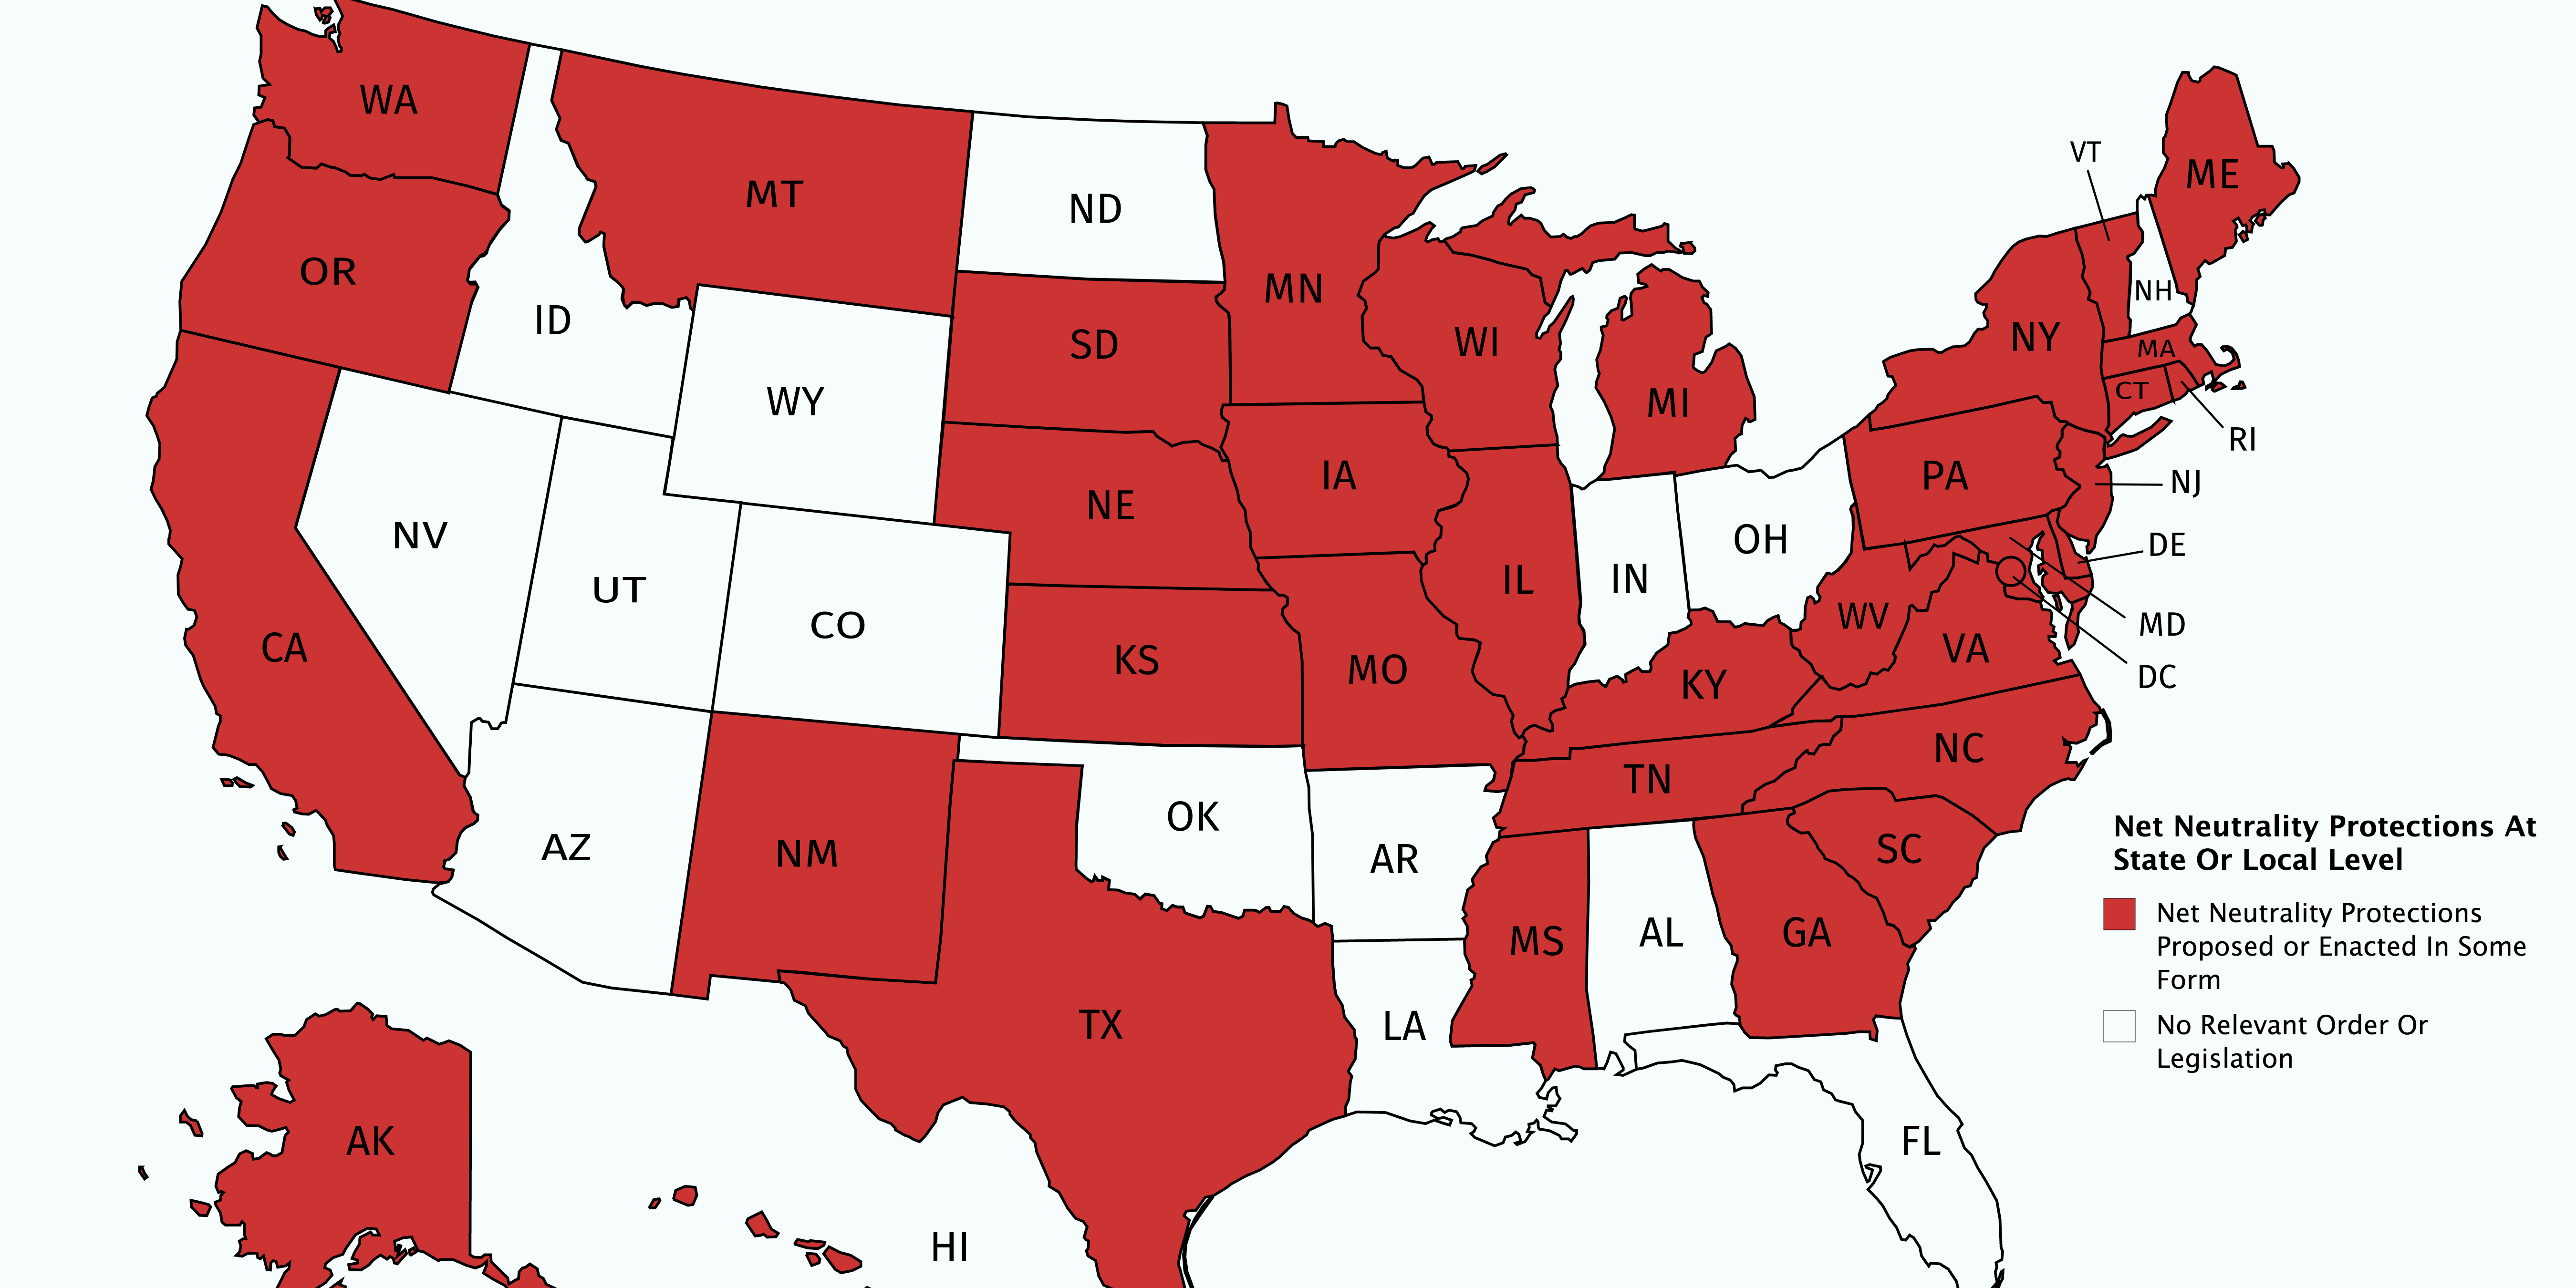 These Maps Show All the Cities and States Now Defending Net Neutrality – Spoiler alert: It's most of them.